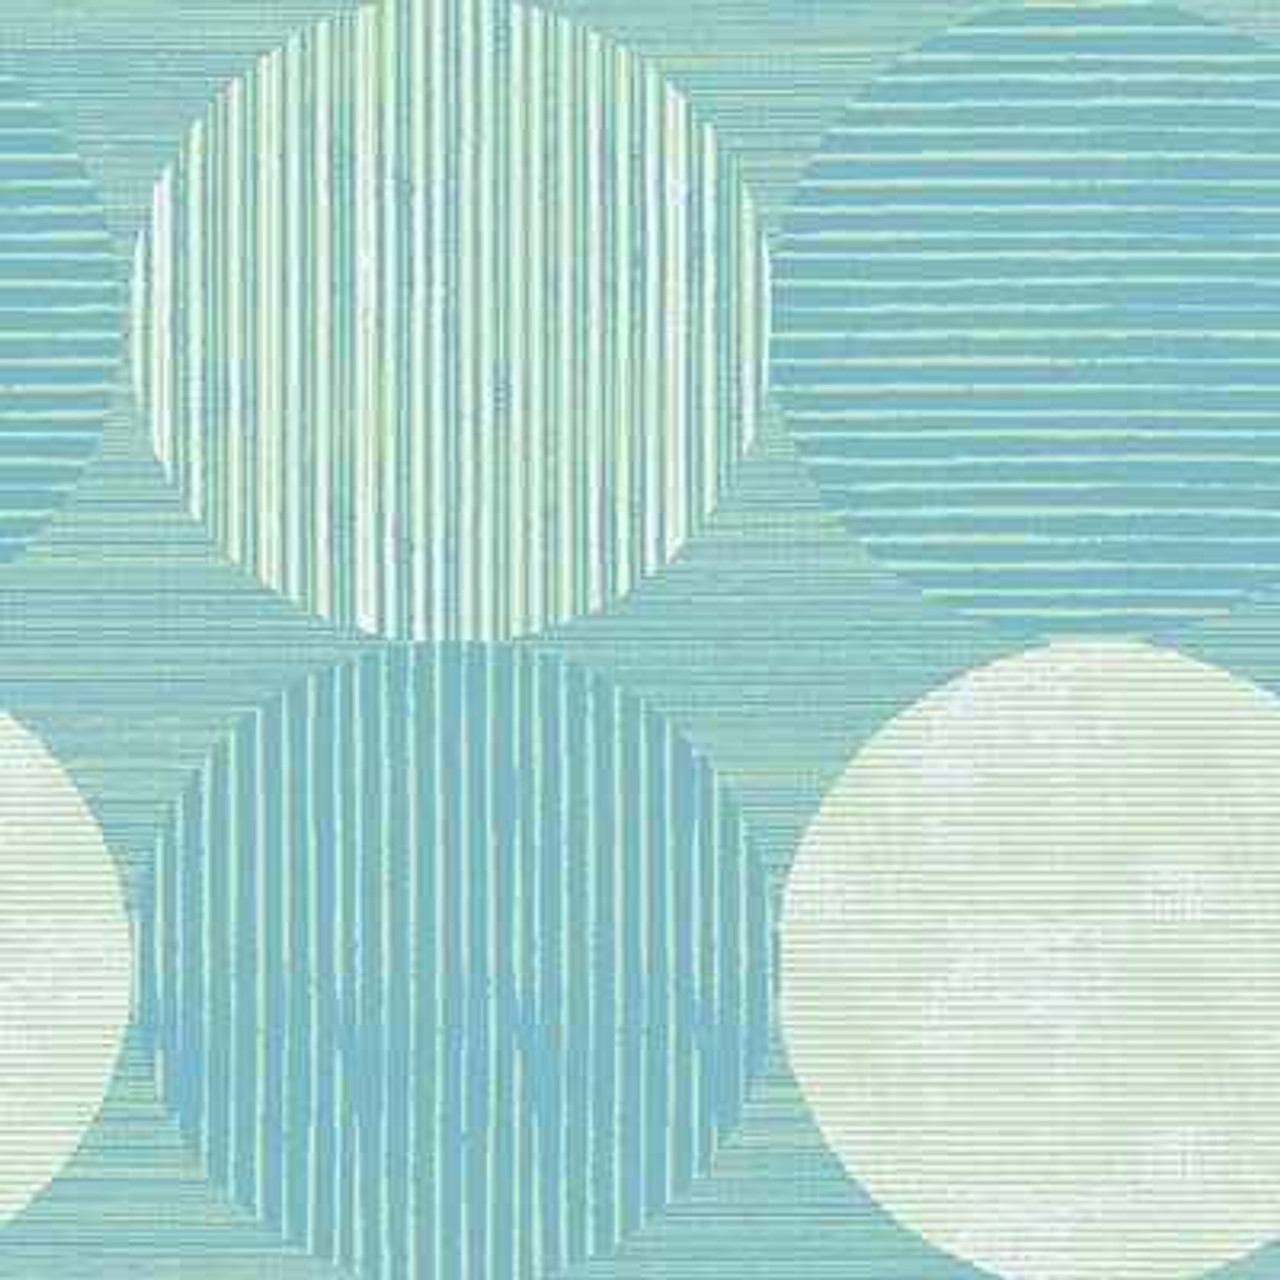 WestPoint/Martex Martex Rx or Comforter or Circles and Stripes or Aqua